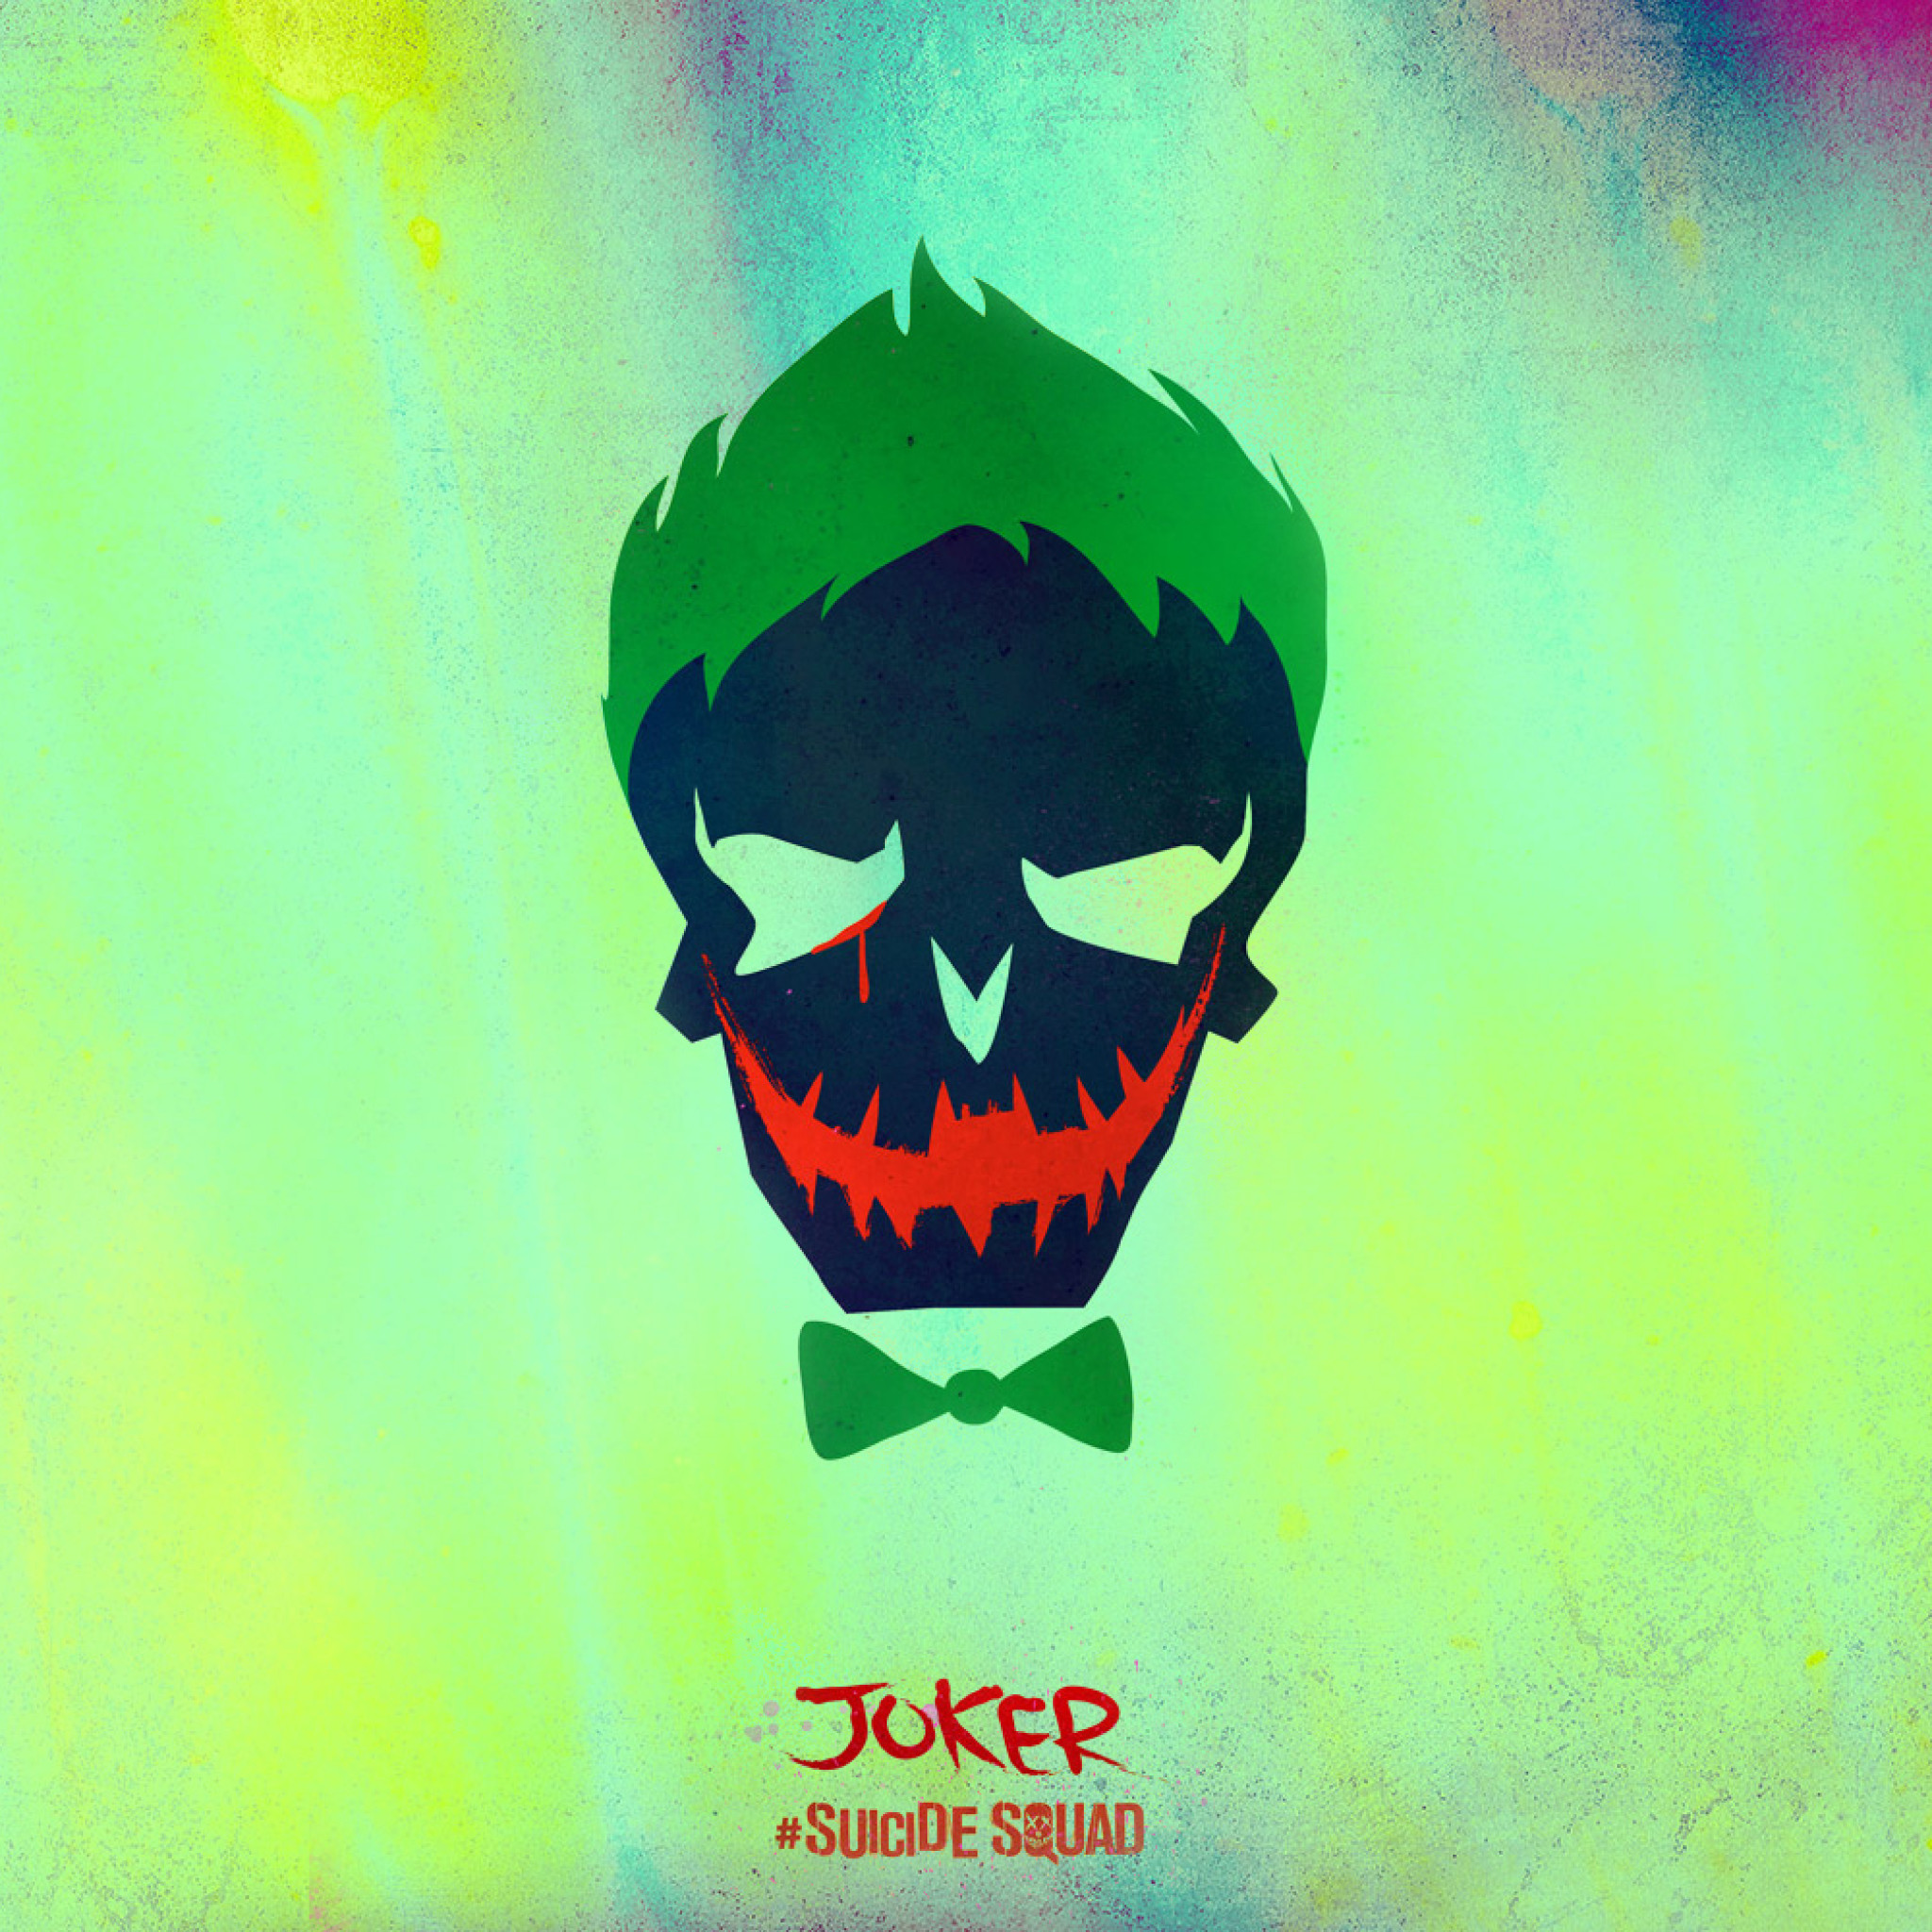 Joker – Tap to see more awesomely creative Suicide squad wallpapers!  @mobile9